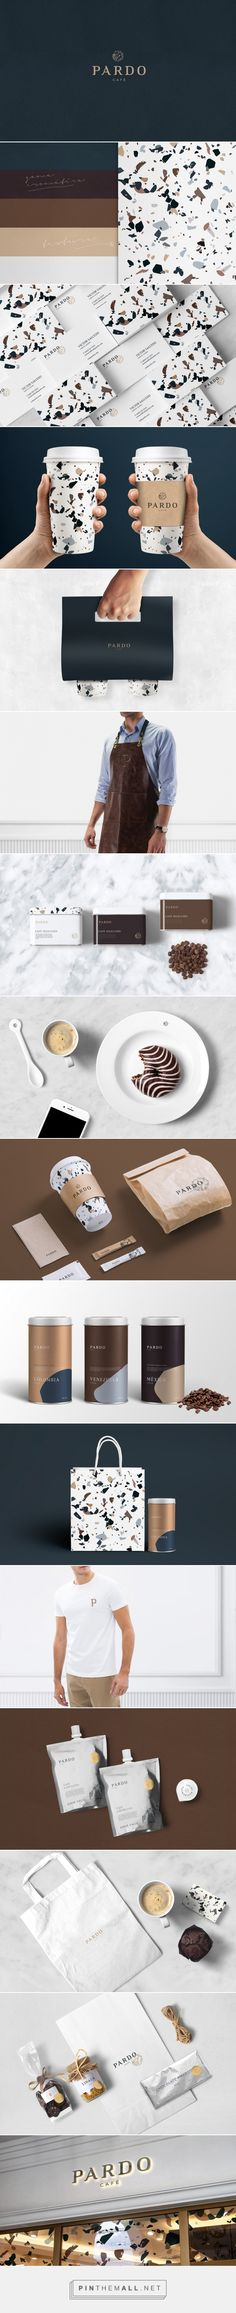 Pardo Cafe Branding and Packaging Fivestar Branding Agency – Design and Branding Agency & Curated Inspiration Gallery Cafe Branding, Branding Agency, Business Branding, Branding Ideas, Brand Identity Design, Corporate Design, Graphic Design Typography, Brand Design, Corporate Identity